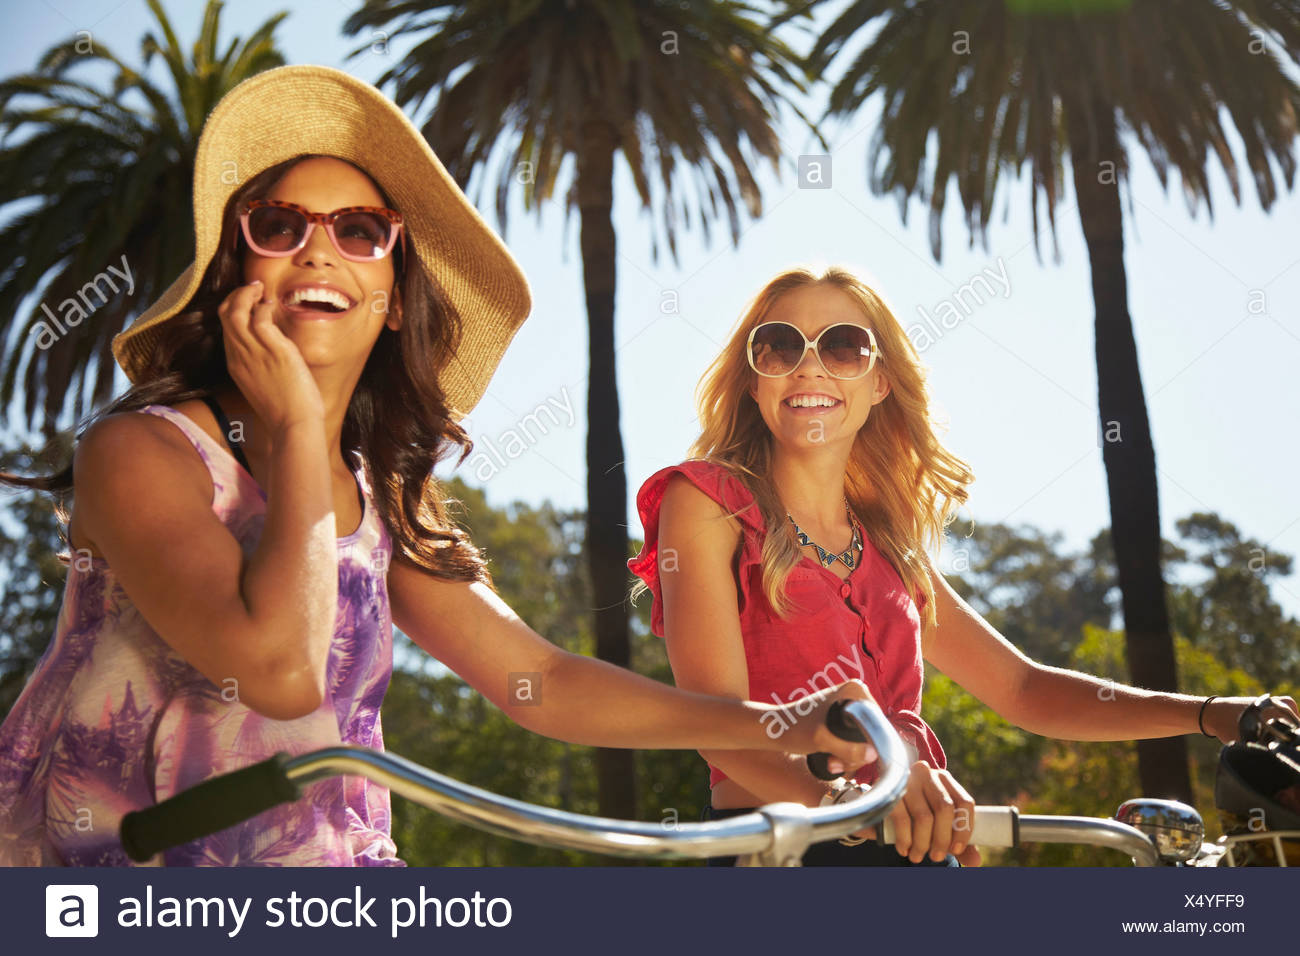 Women on bicycle laughing - Stock Image